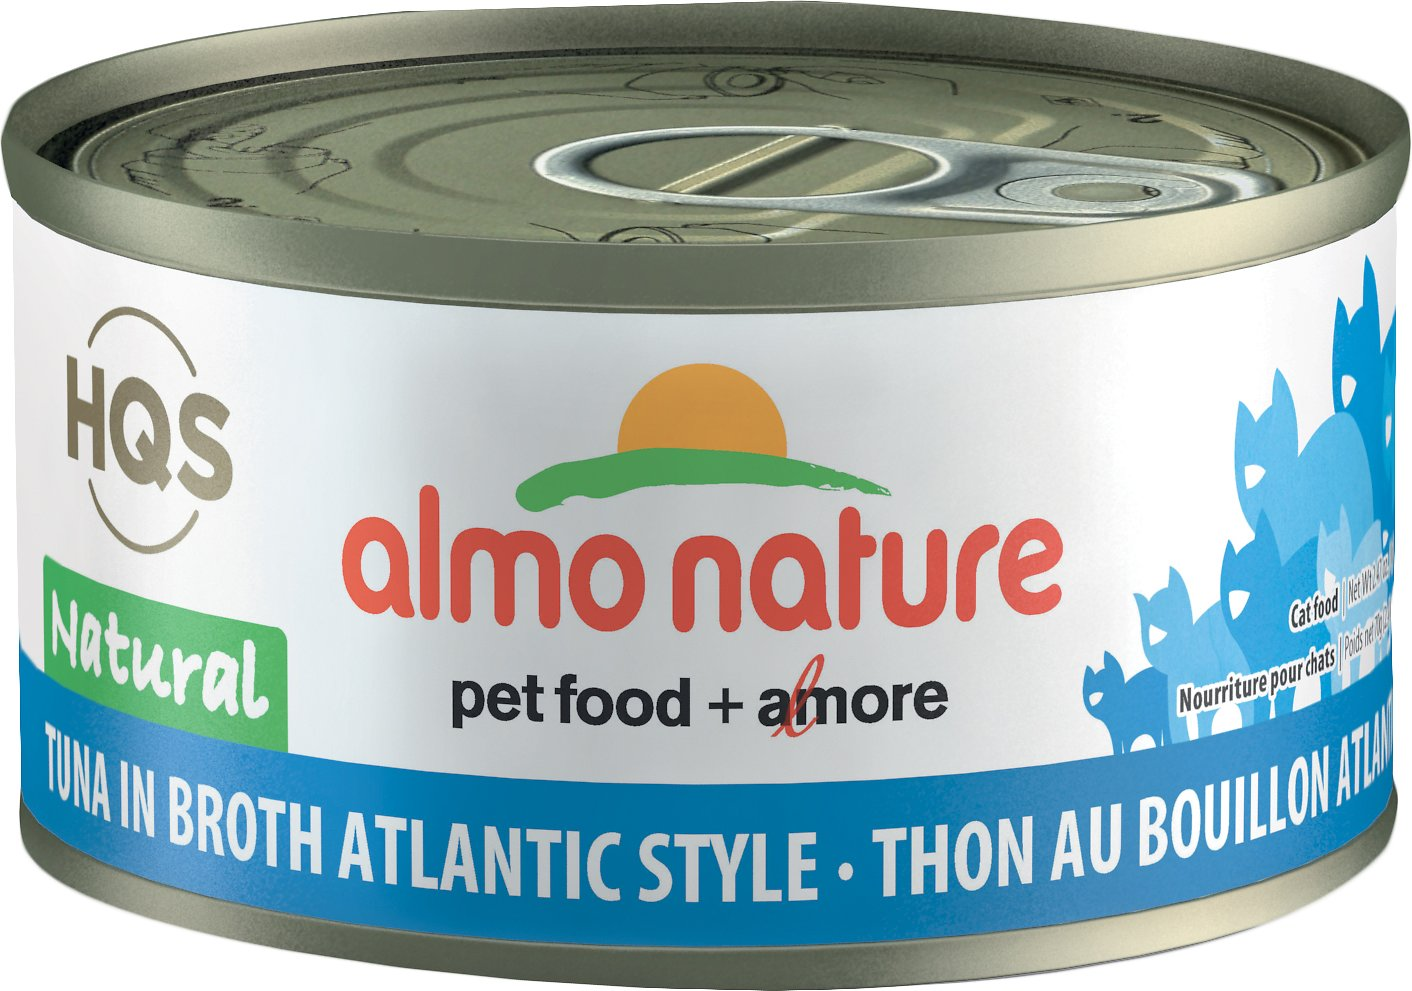 Almo Nature HQS Natural Tuna in Broth Atlantic Style Grain-Free Wet Cat Food, 2.47-oz